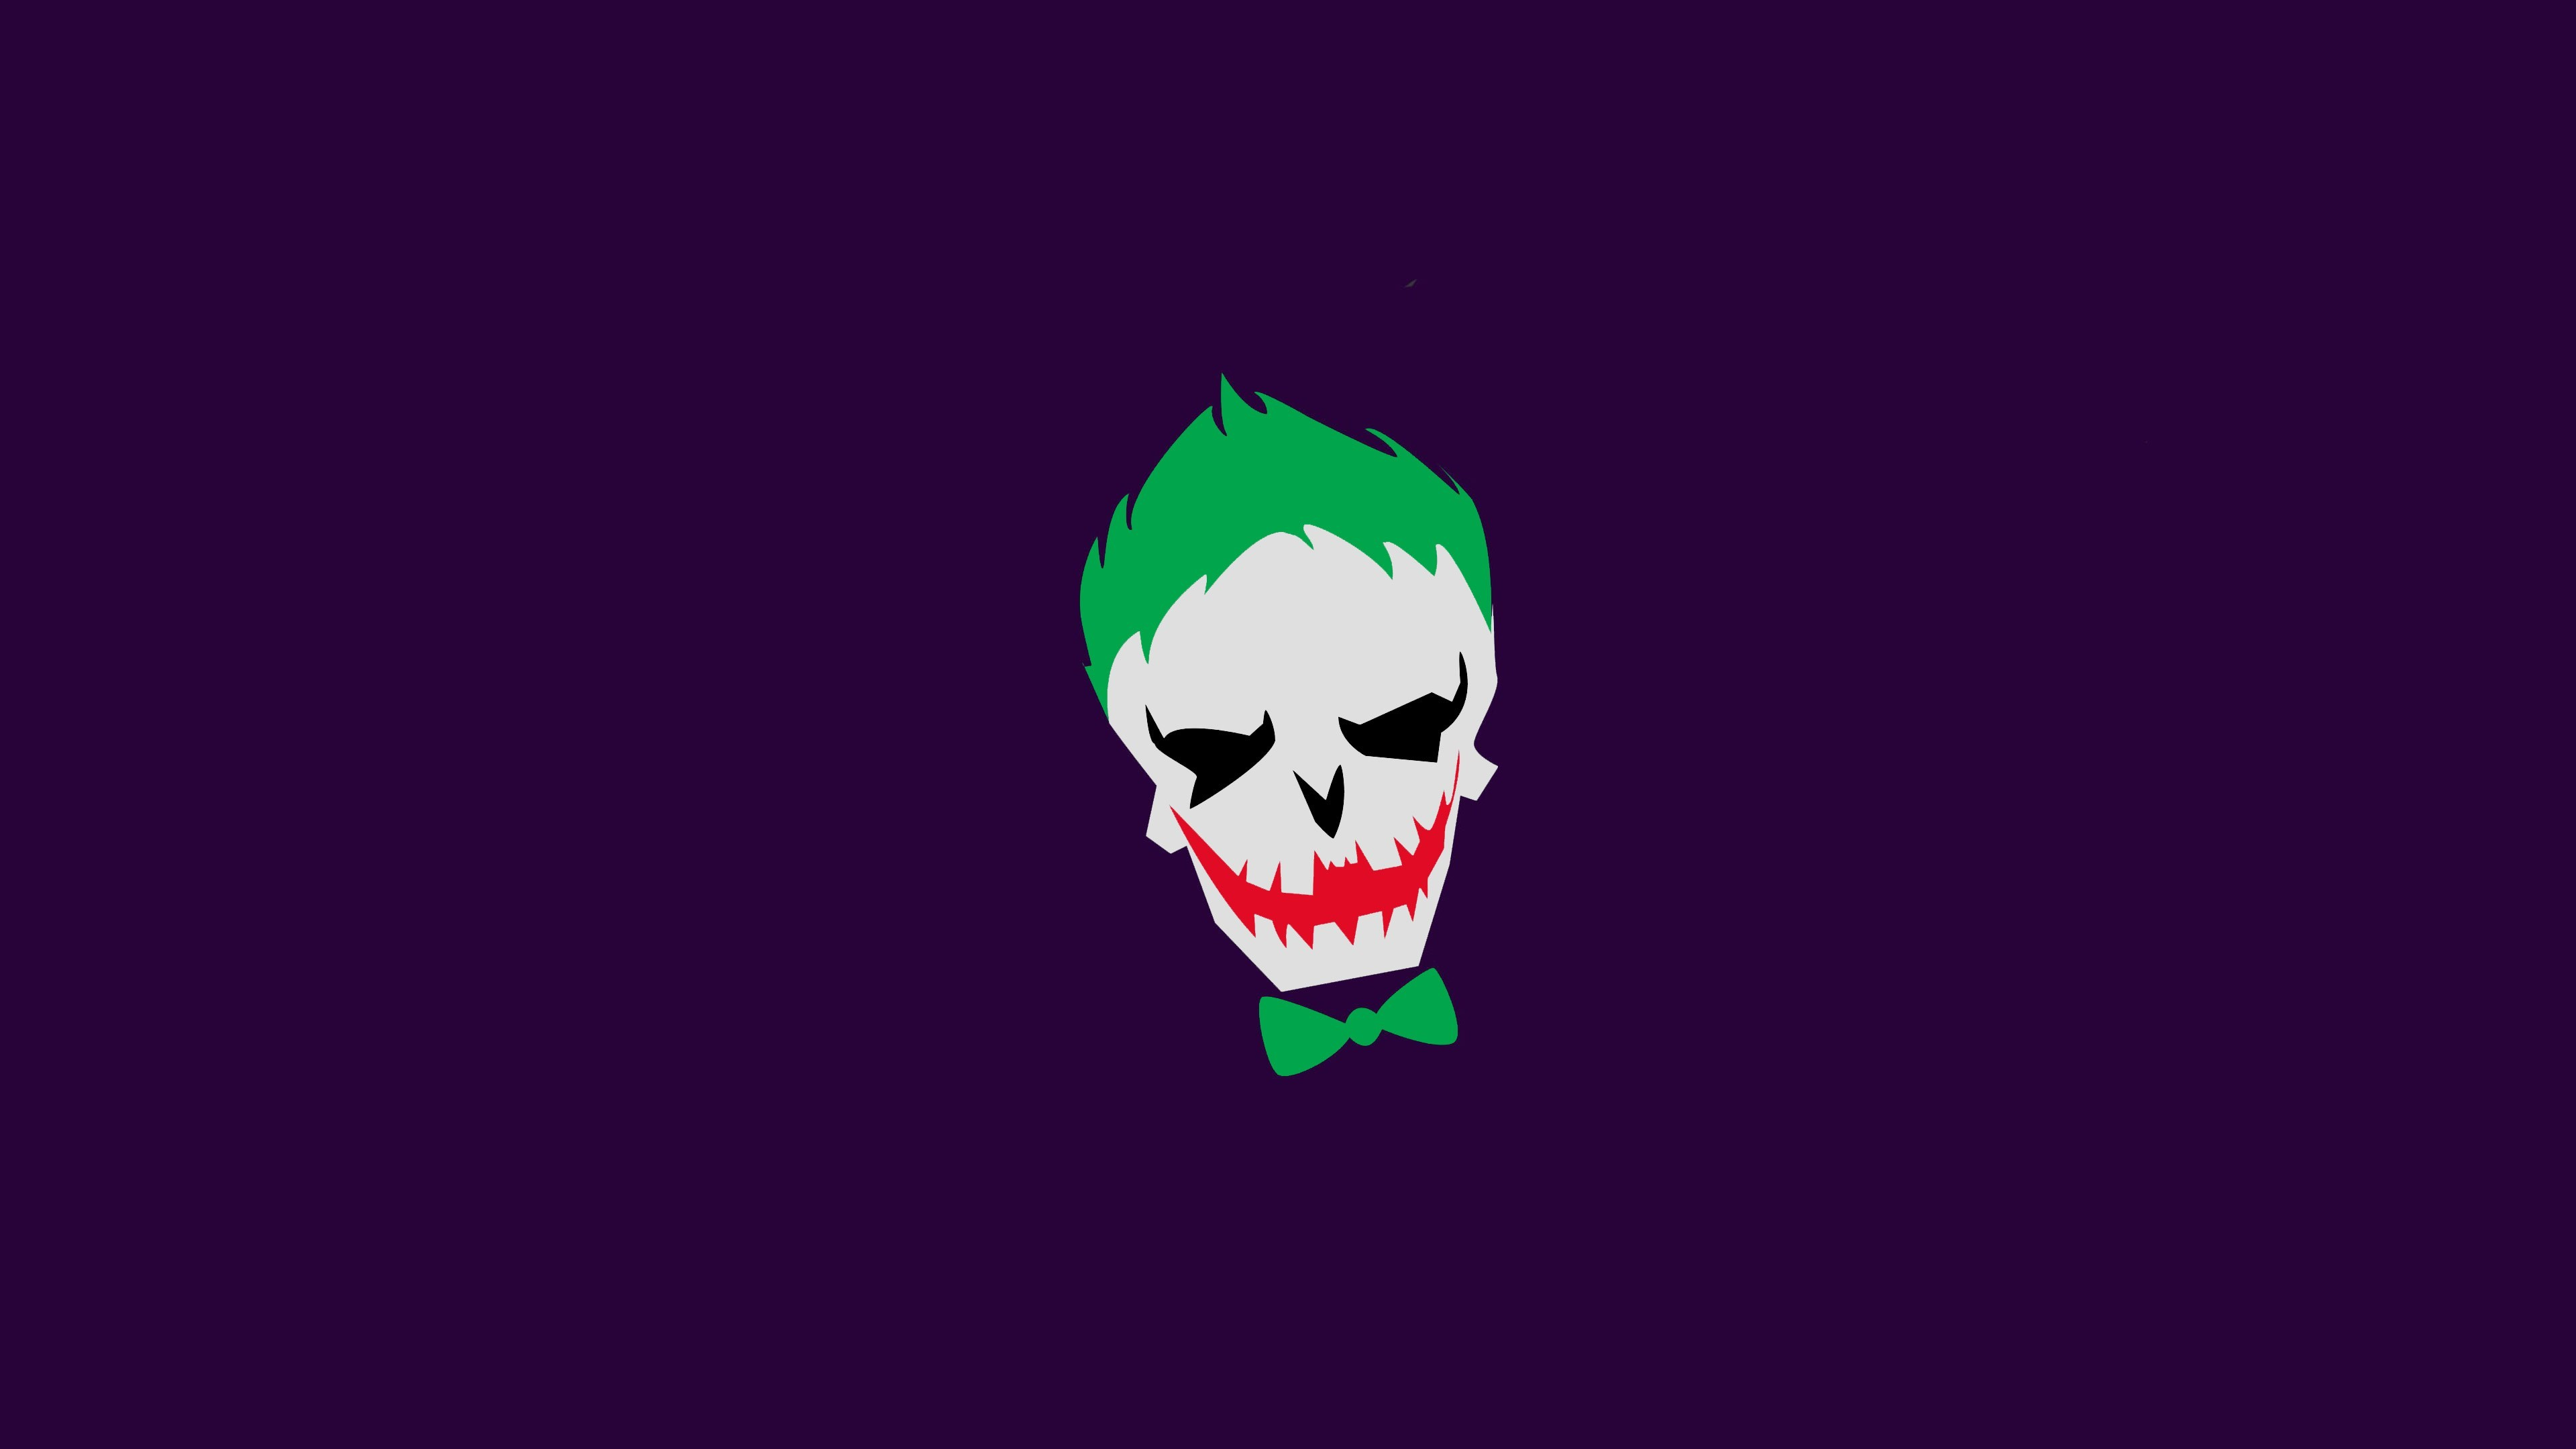 Res: 3840x2160, 50 Minimalist QHD Wallpapers of the Greatest Supervillains of All Time